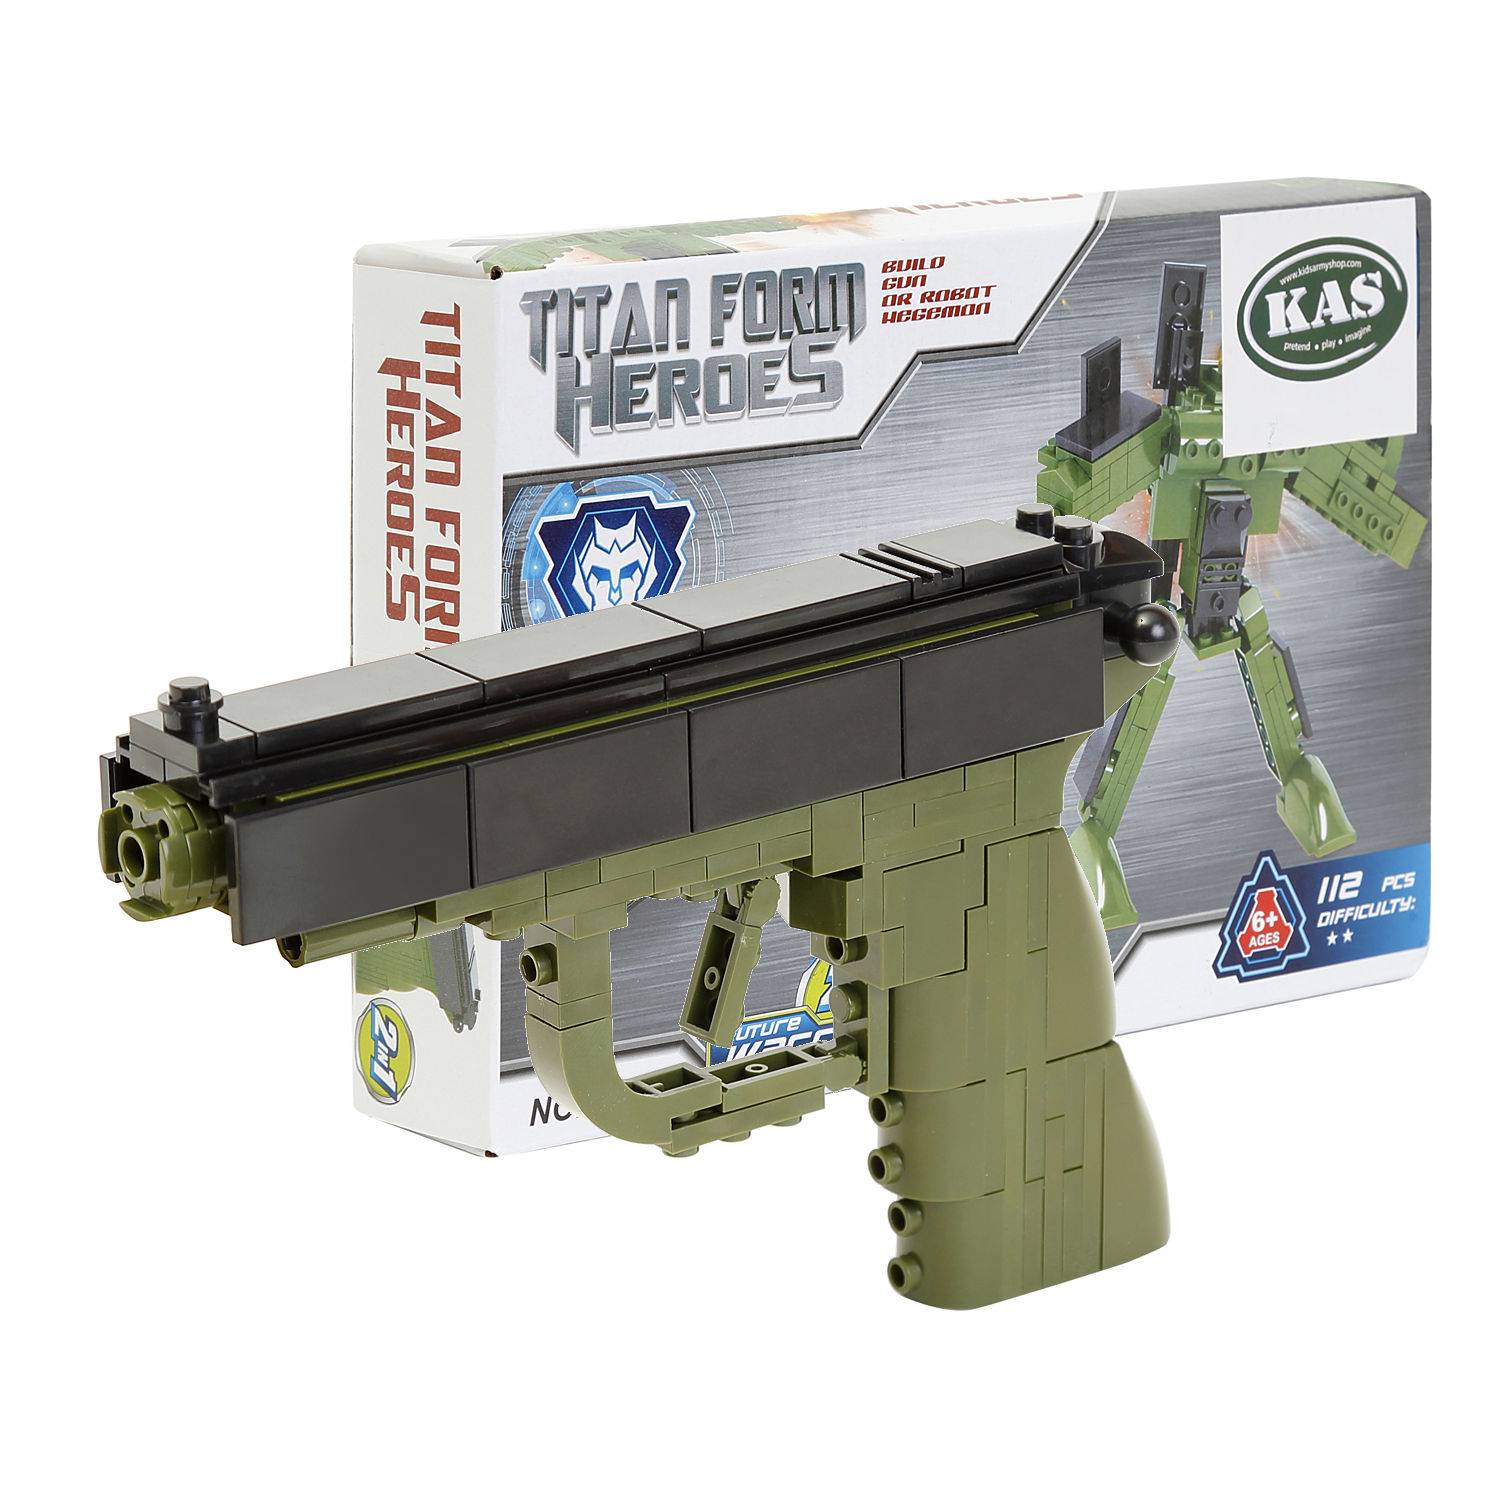 Toy army guns for kids